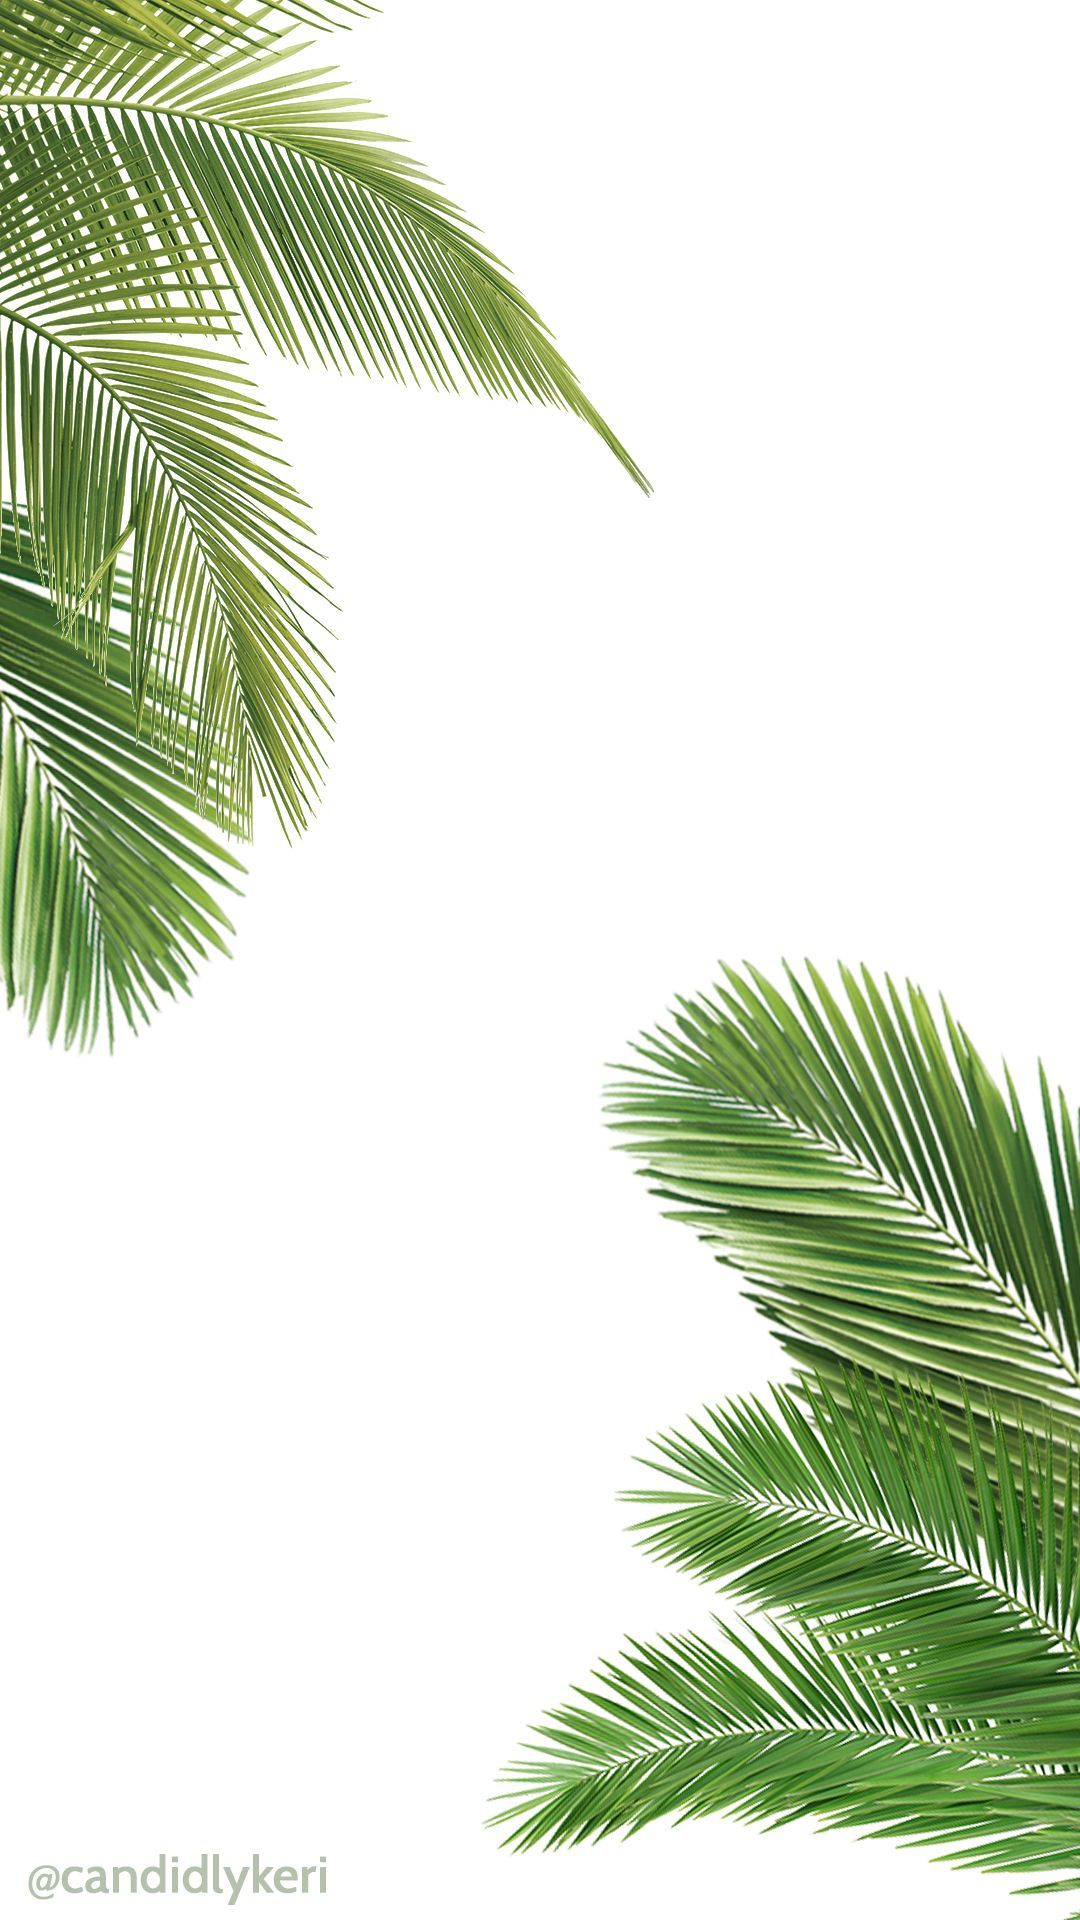 Palm Tree And White Wallpaper Free Download For IPhone Android Or Desktop Background On The Blog